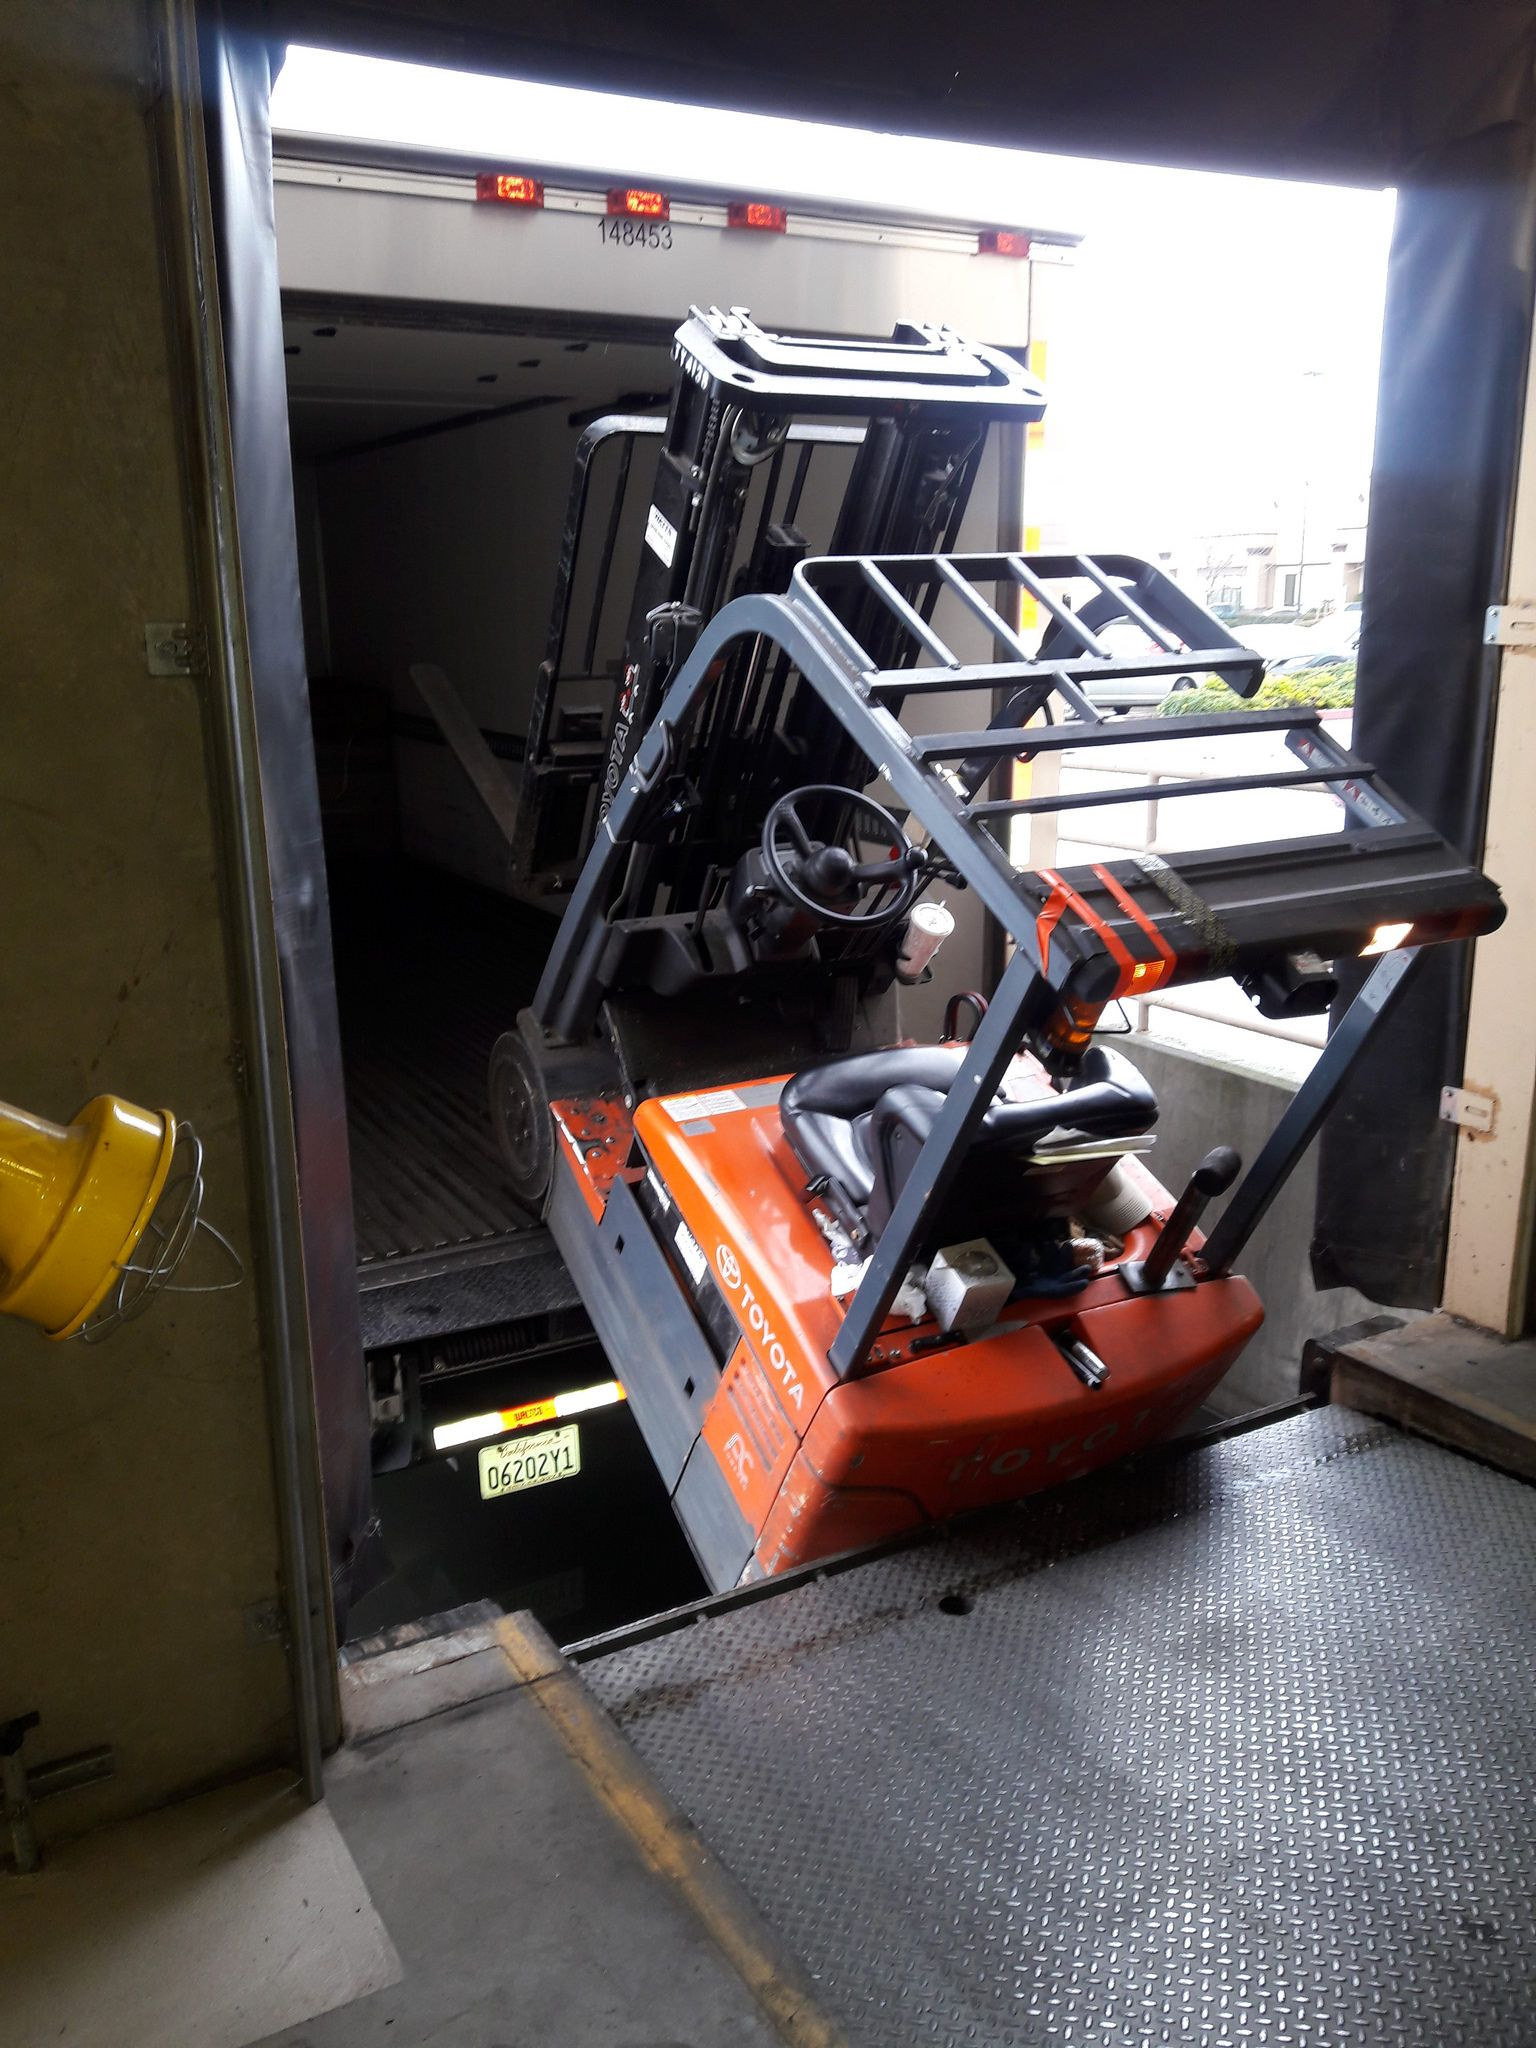 Boo boo forklift training occupational health and